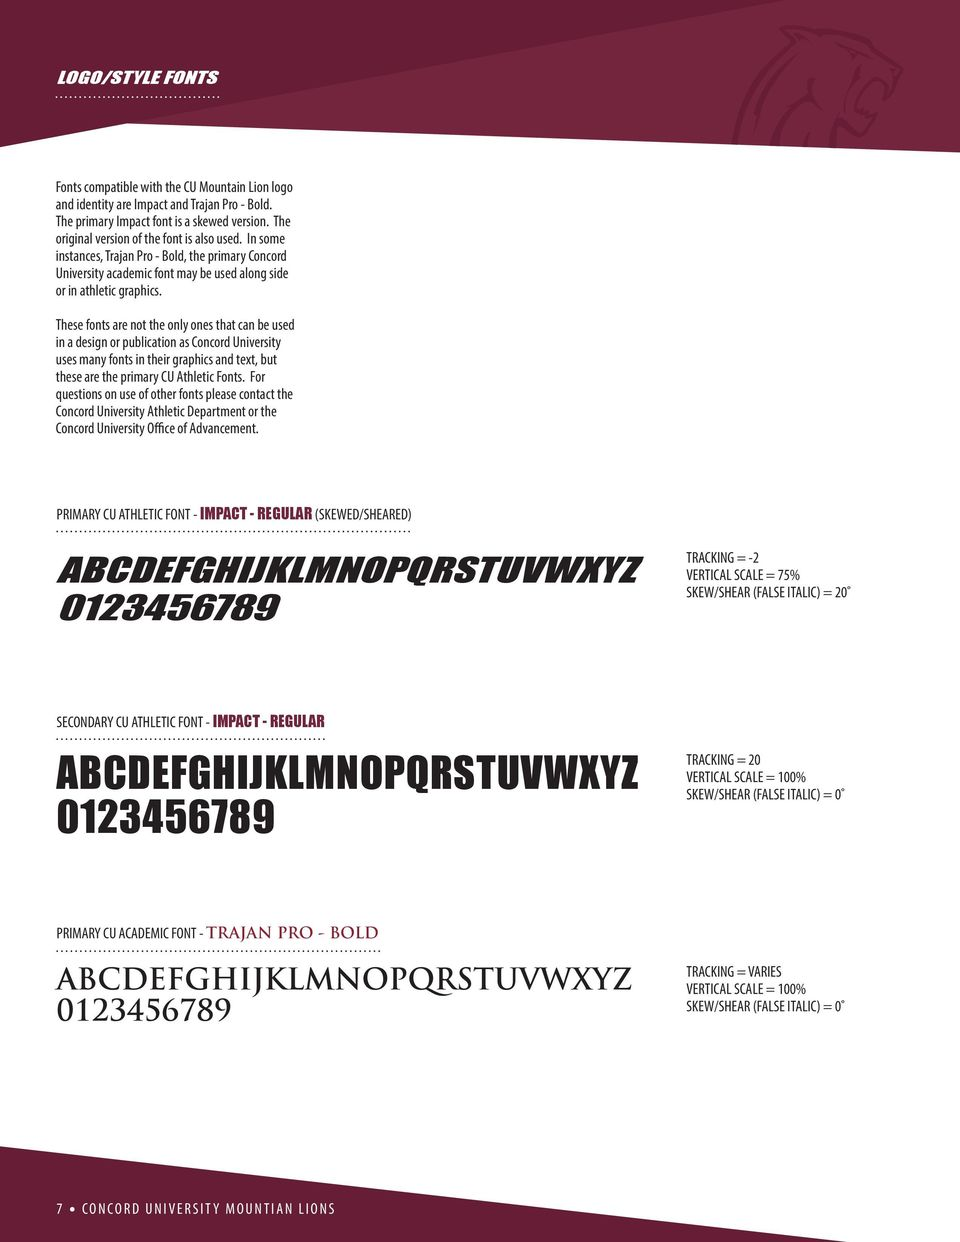 These fonts are not the only ones that can be used in a design or publication as Concord University uses many fonts in their graphics and text, but these are the primary CU Athletic Fonts.